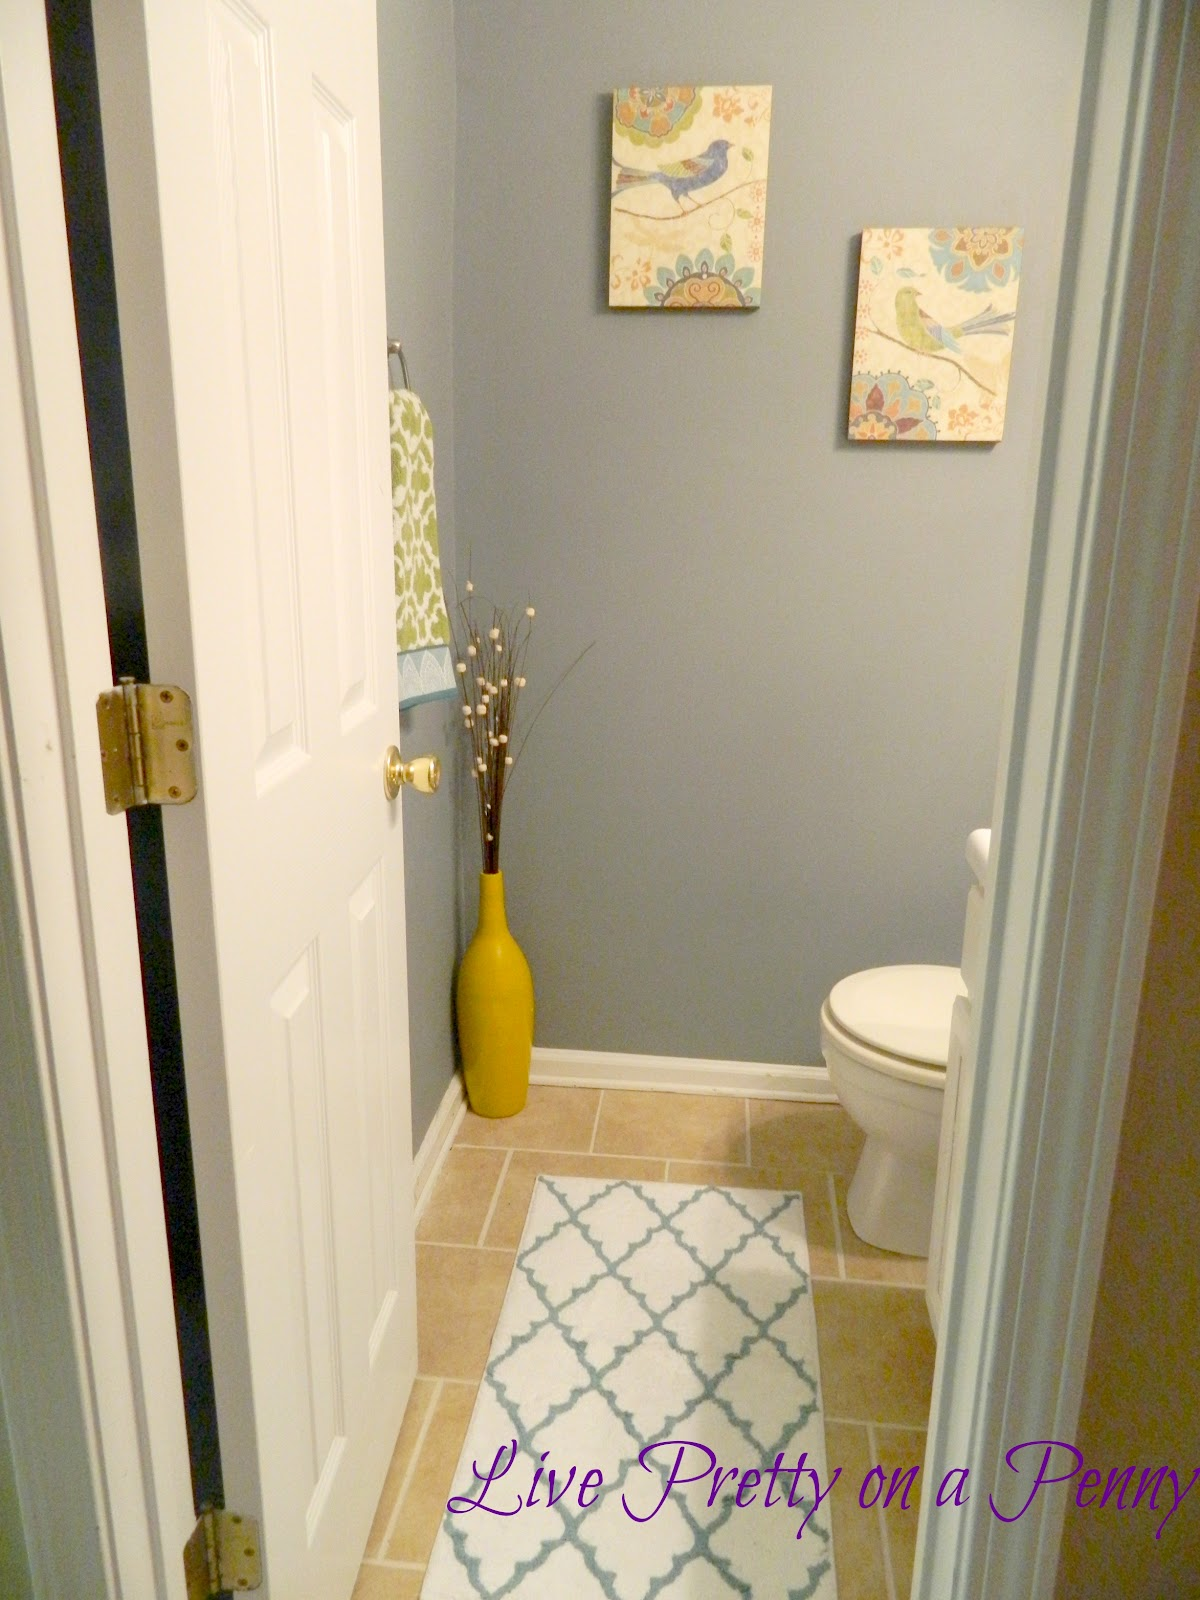 Best Budget Half Bath Makeover Live Pretty On A Penny This Month